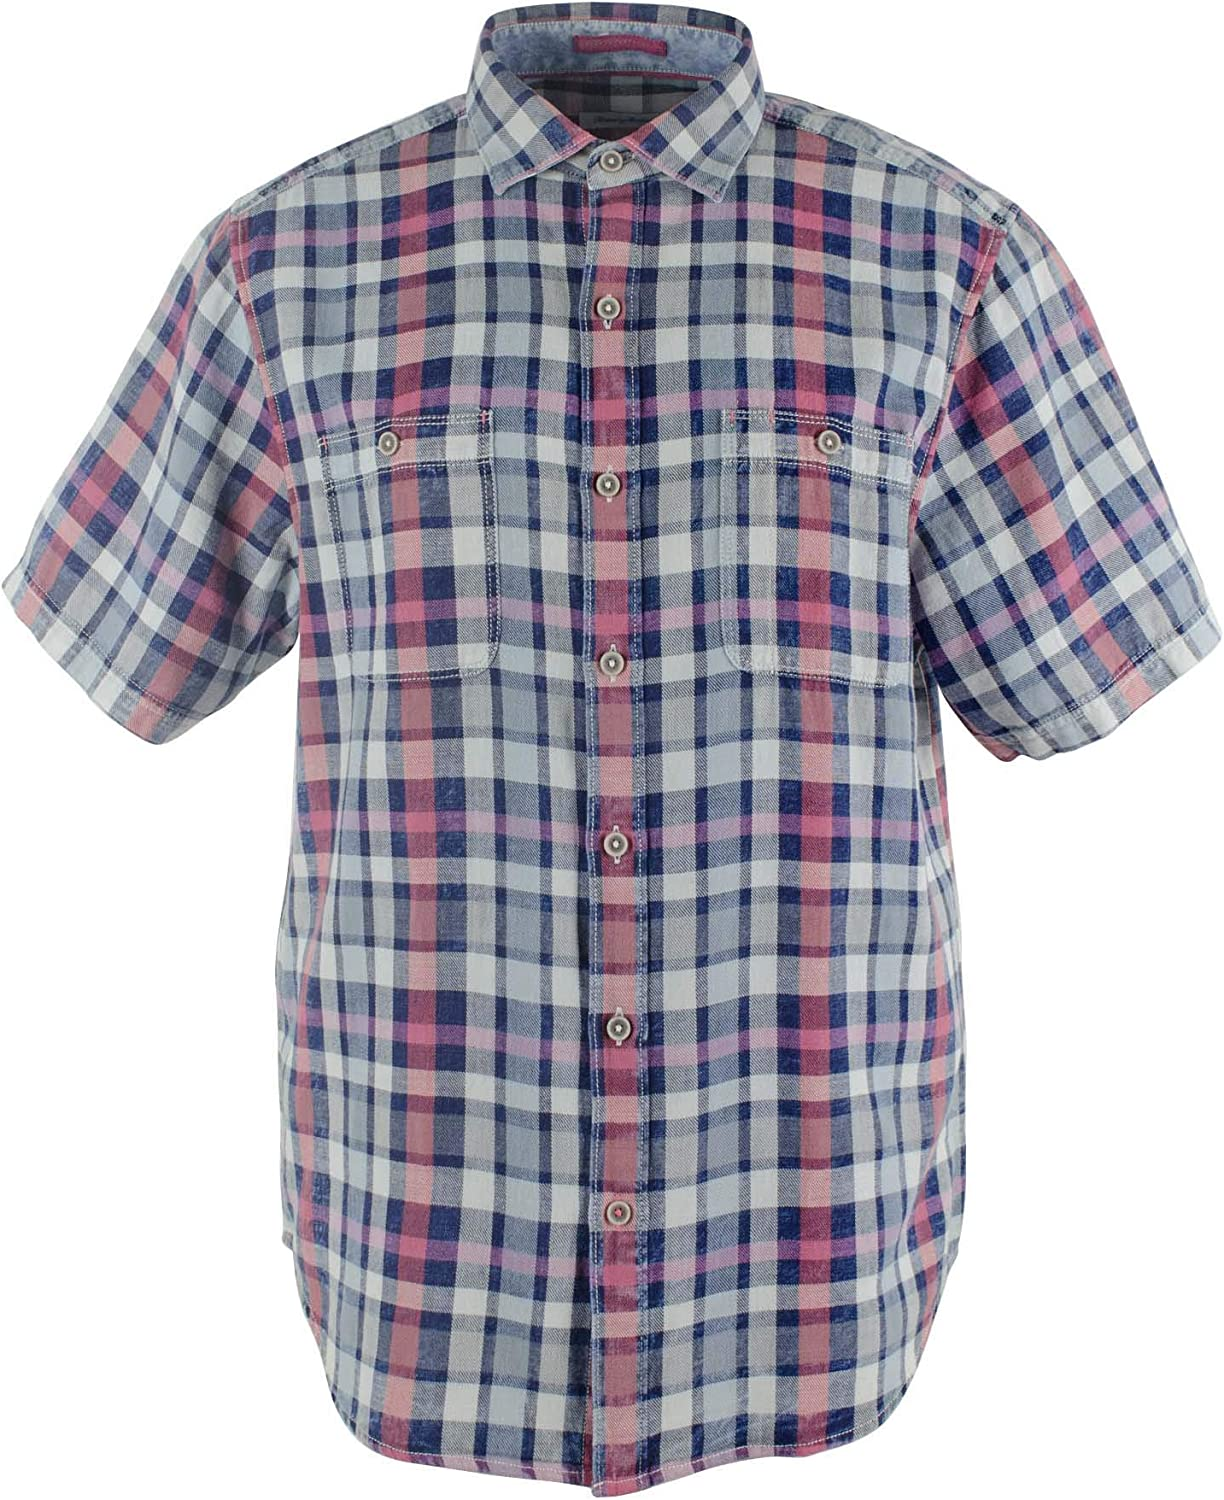 Tommy Bahama Men's Sand 67% OFF of Popular products fixed price Swept Plaid Cotton Camp Short Shirt Slee